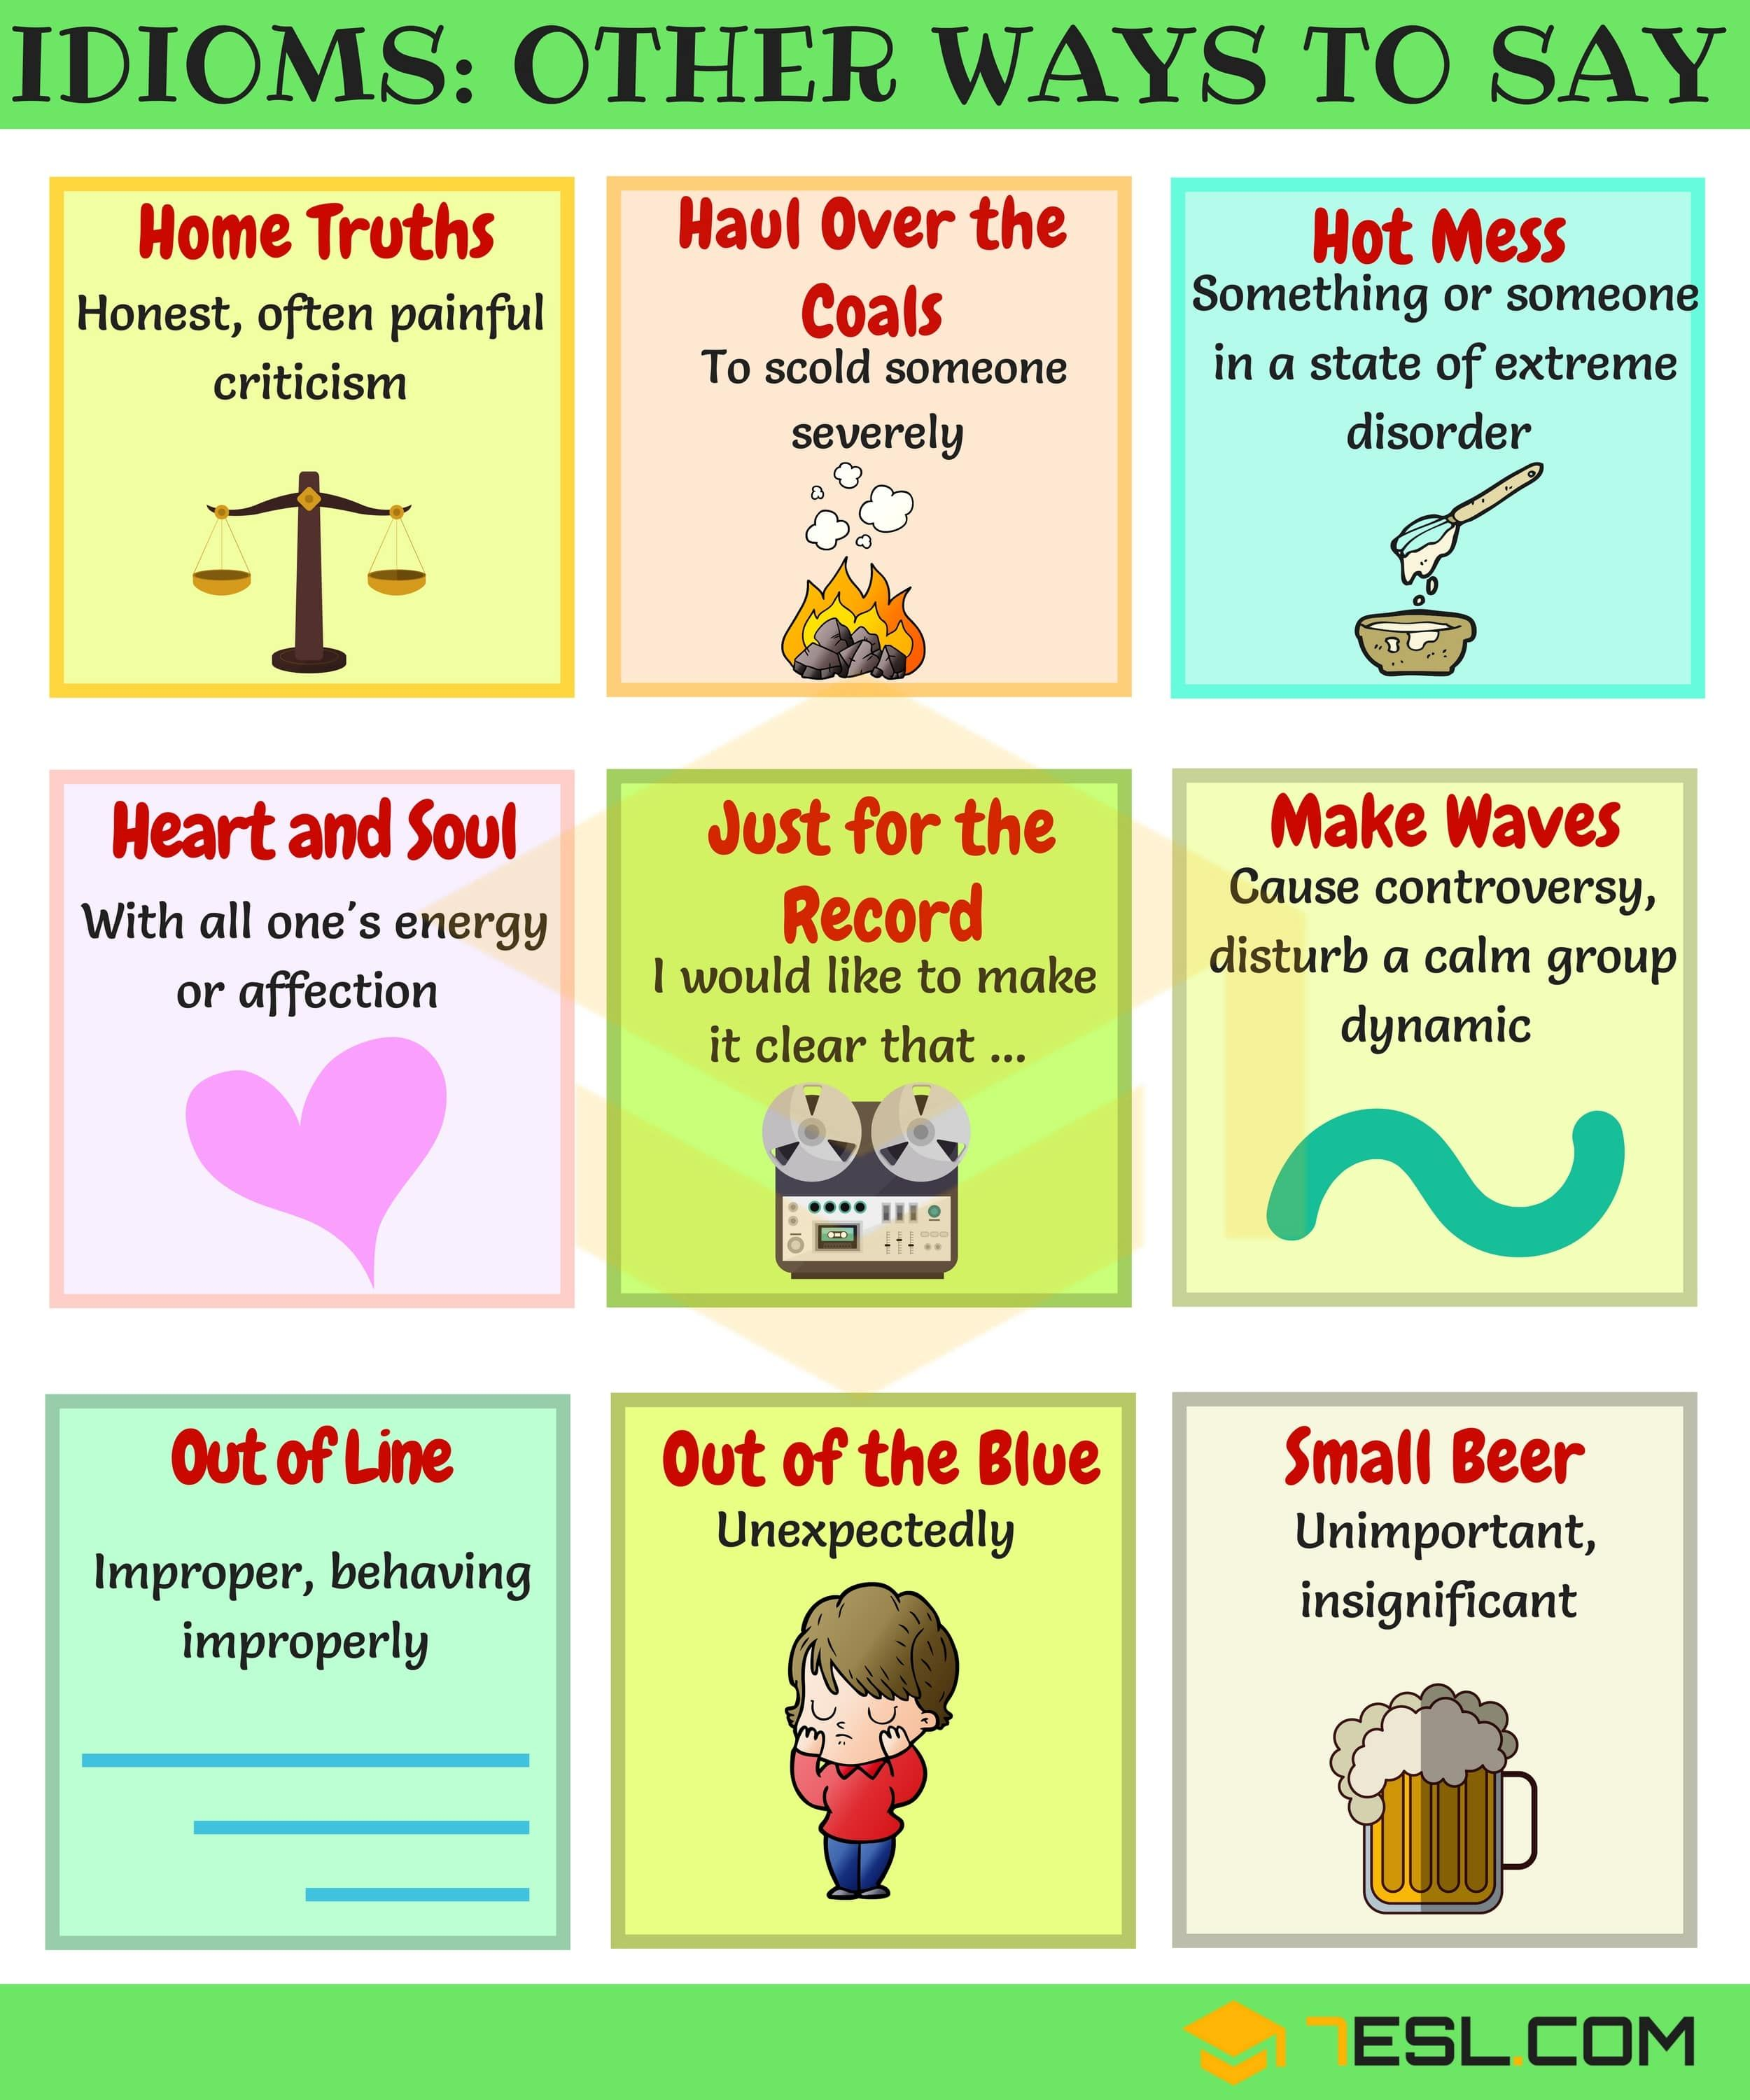 55+ Common Idiomatic Expressions in English   Other Ways to Say